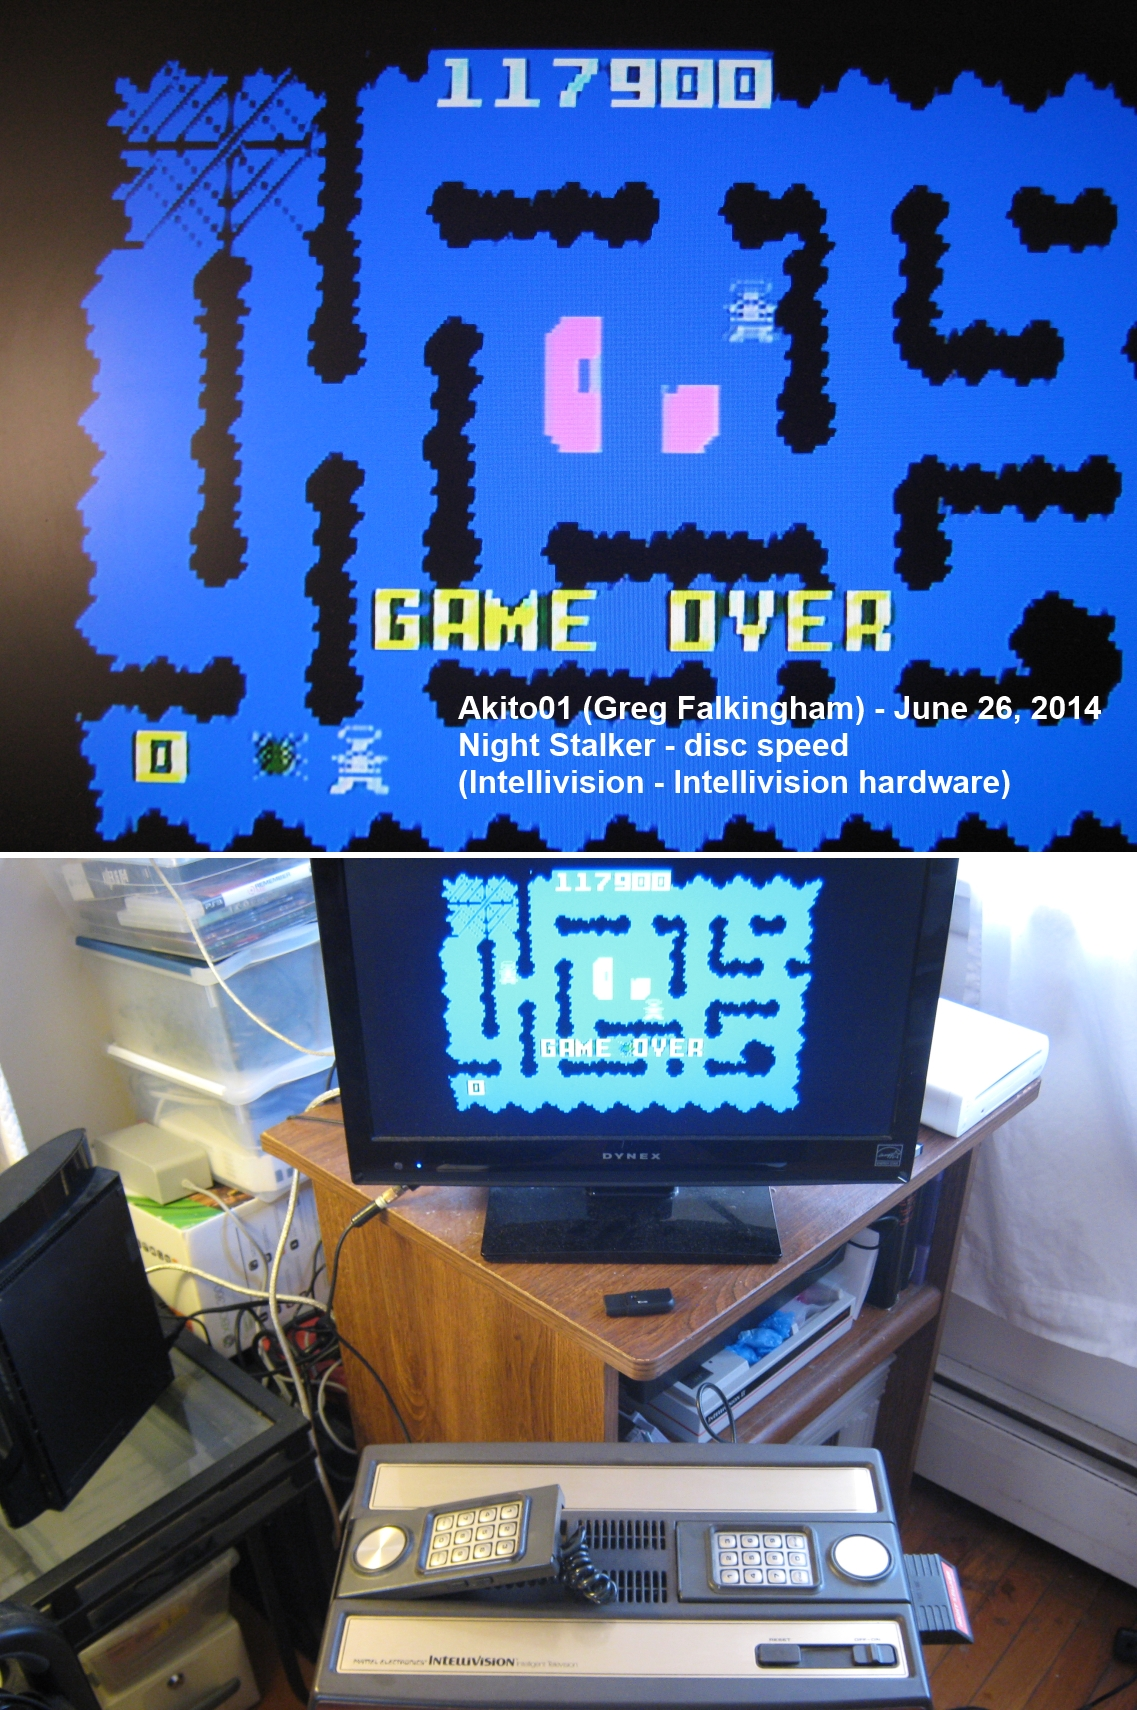 Akito01: Night Stalker: Game Disc [Fastest] (Intellivision) 117,900 points on 2014-06-26 16:56:47